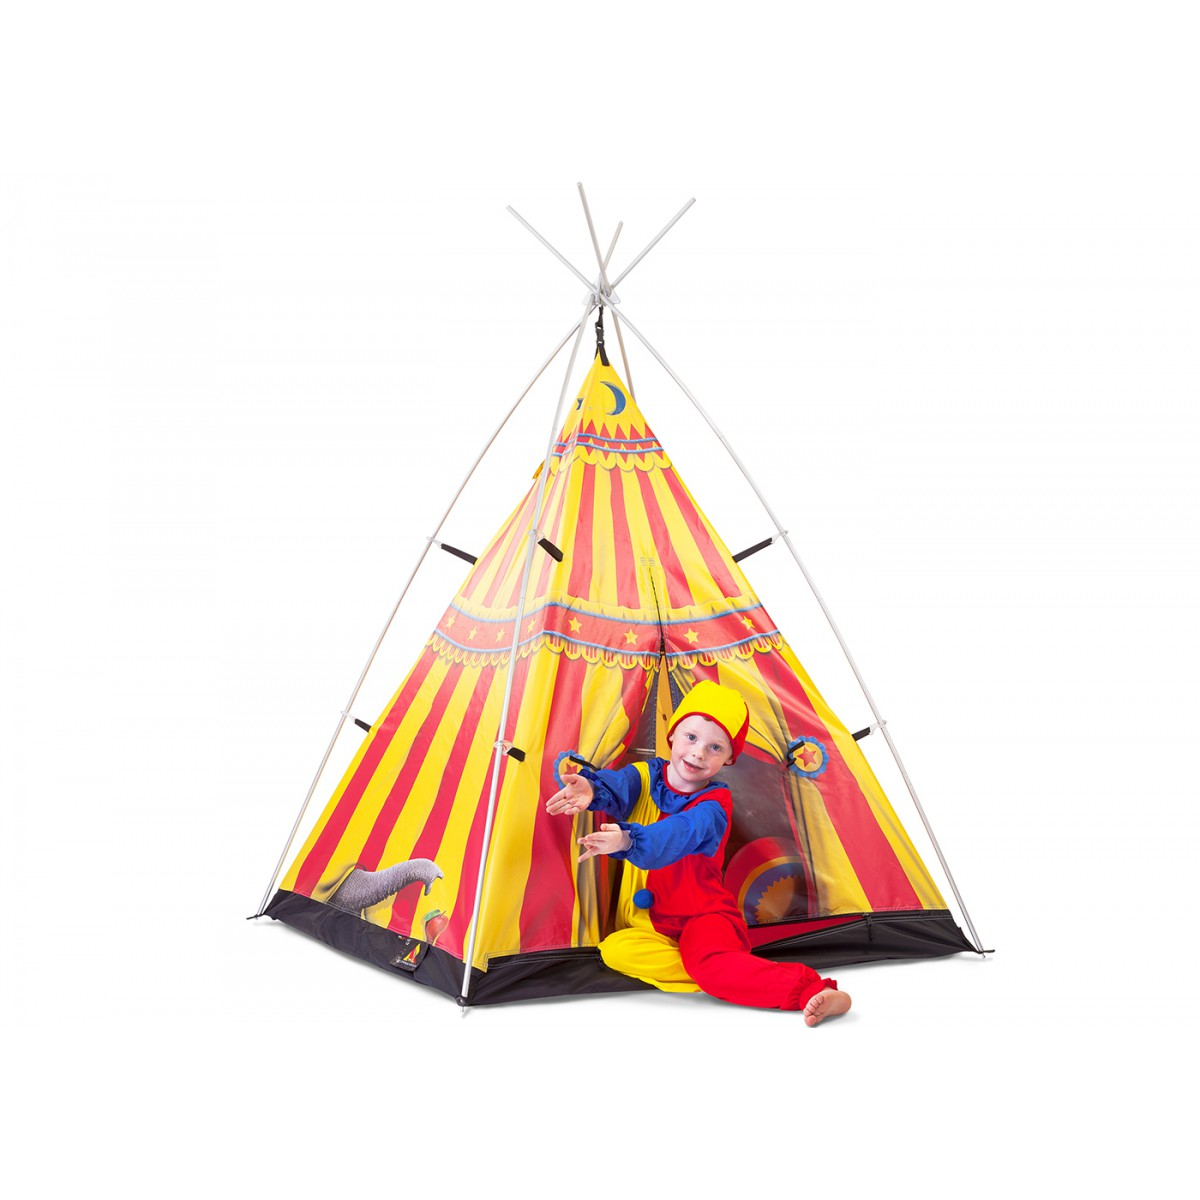 tente de camping pour enfant th me cirque fieldcandy. Black Bedroom Furniture Sets. Home Design Ideas